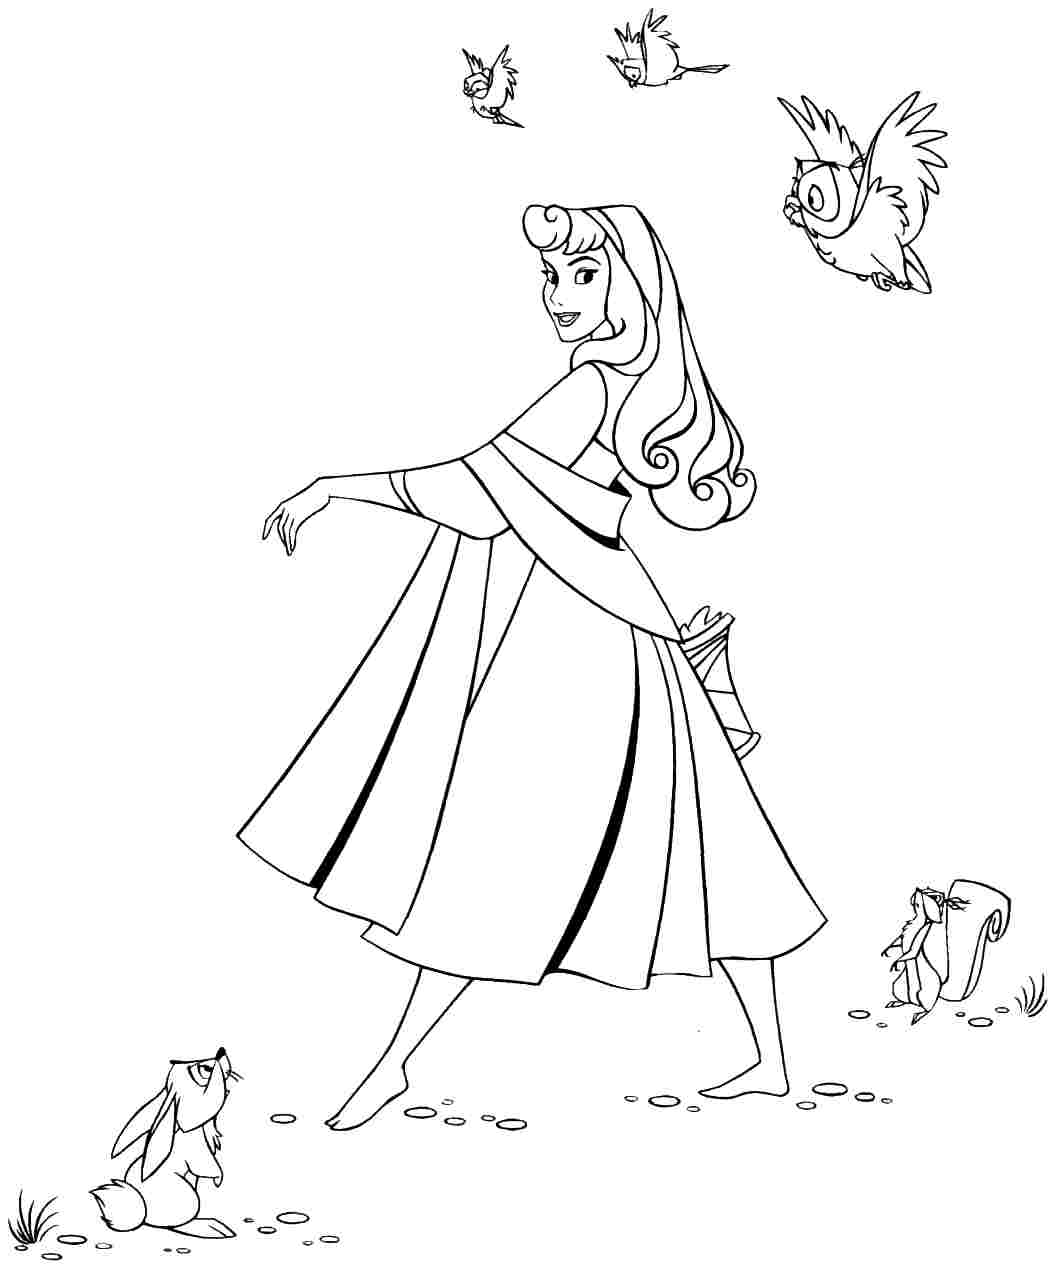 sleeping beauty coloring pages sleeping beauty to color for kids sleeping beauty kids beauty pages sleeping coloring